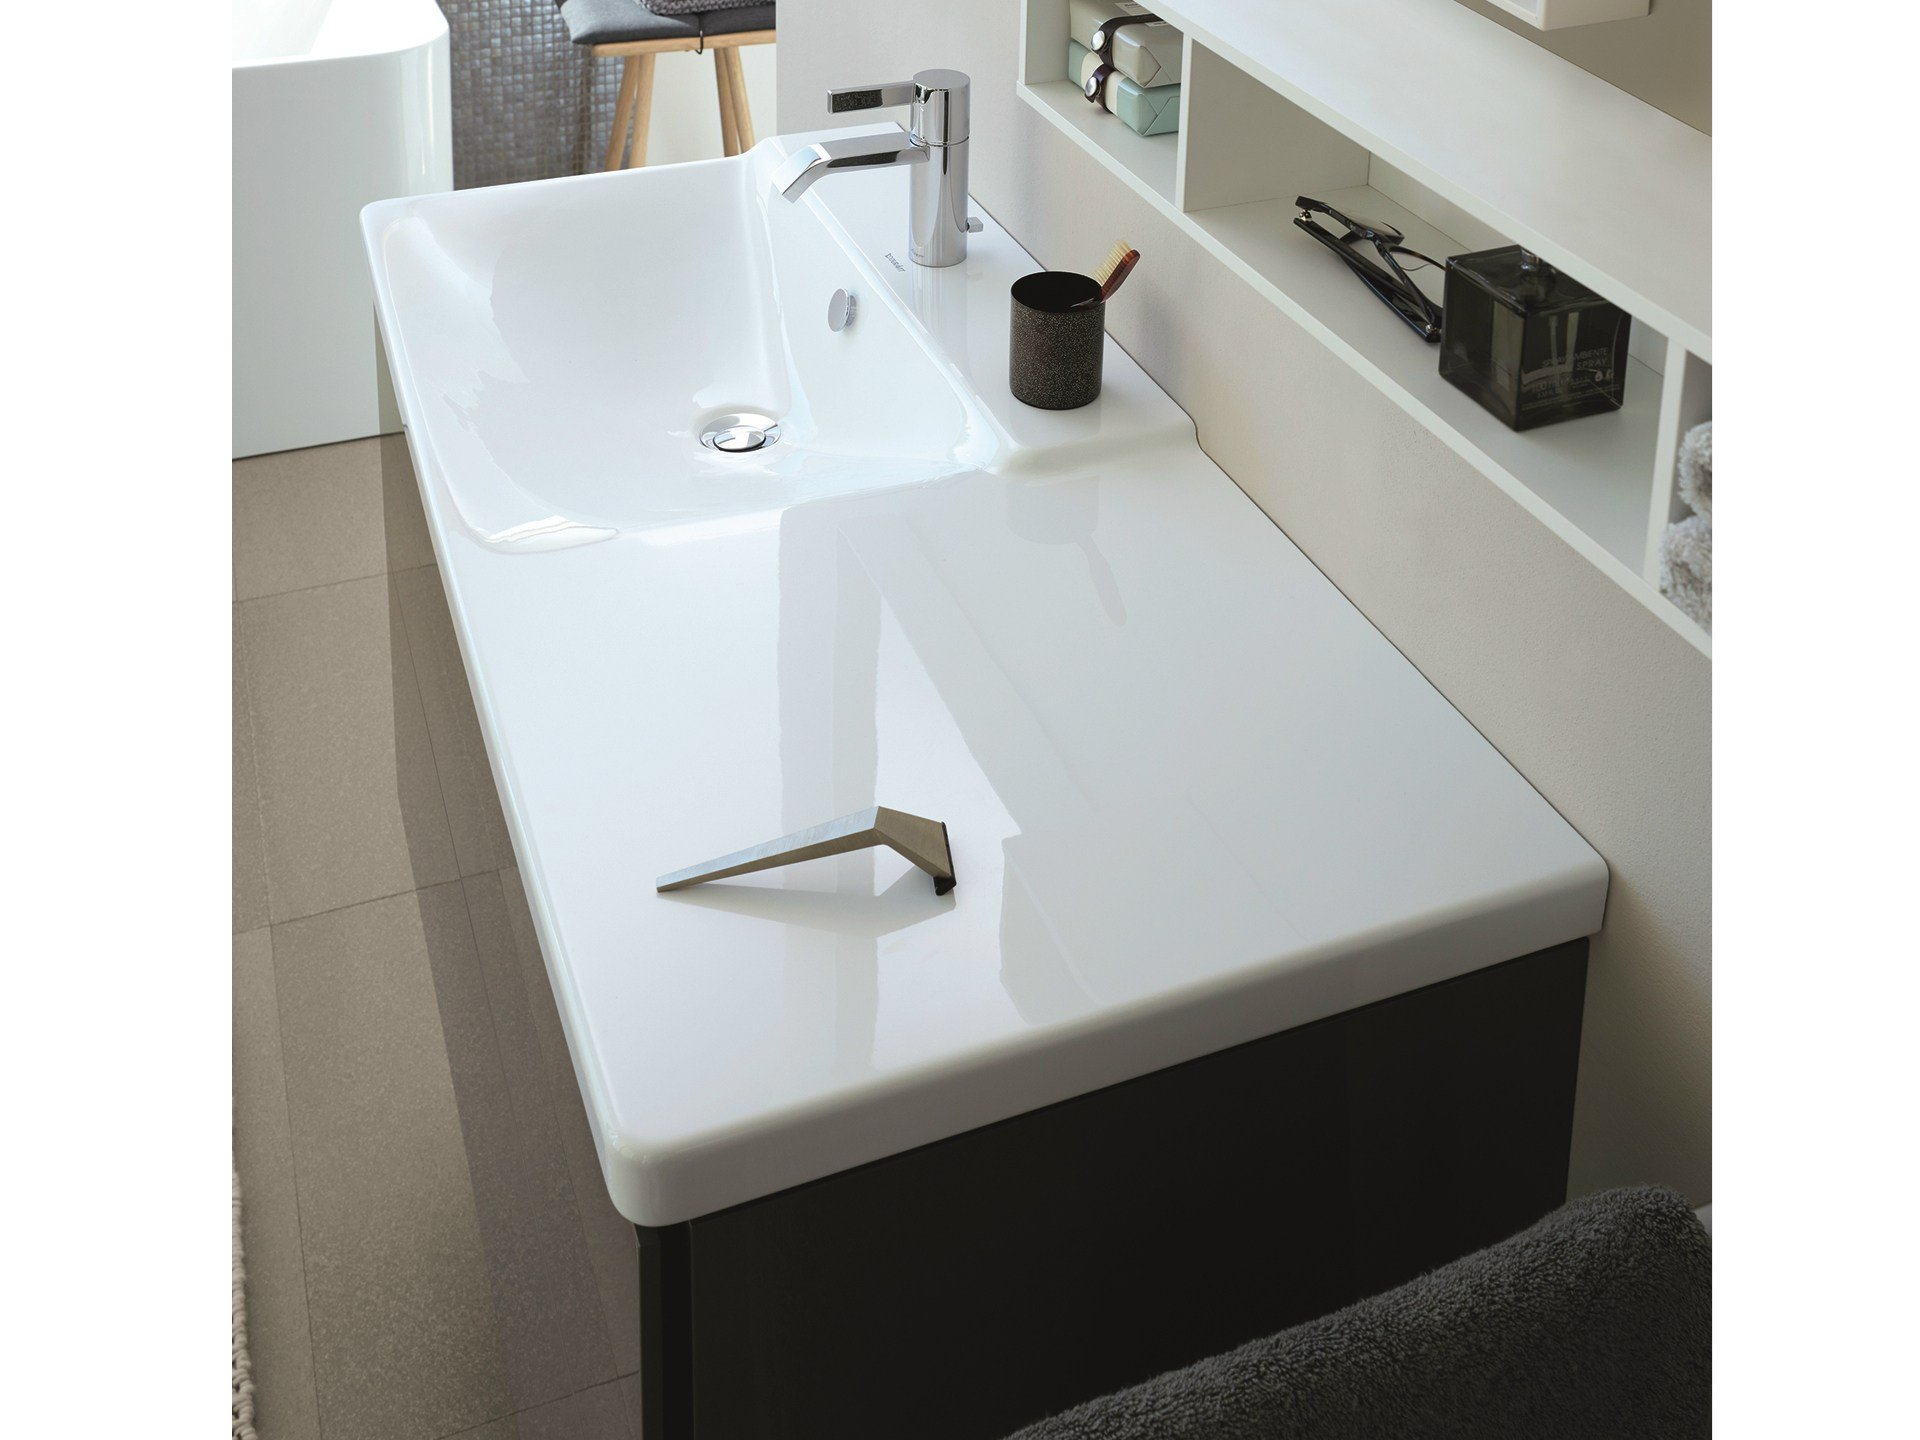 p3 comforts washbasin with integrated countertop by. Black Bedroom Furniture Sets. Home Design Ideas